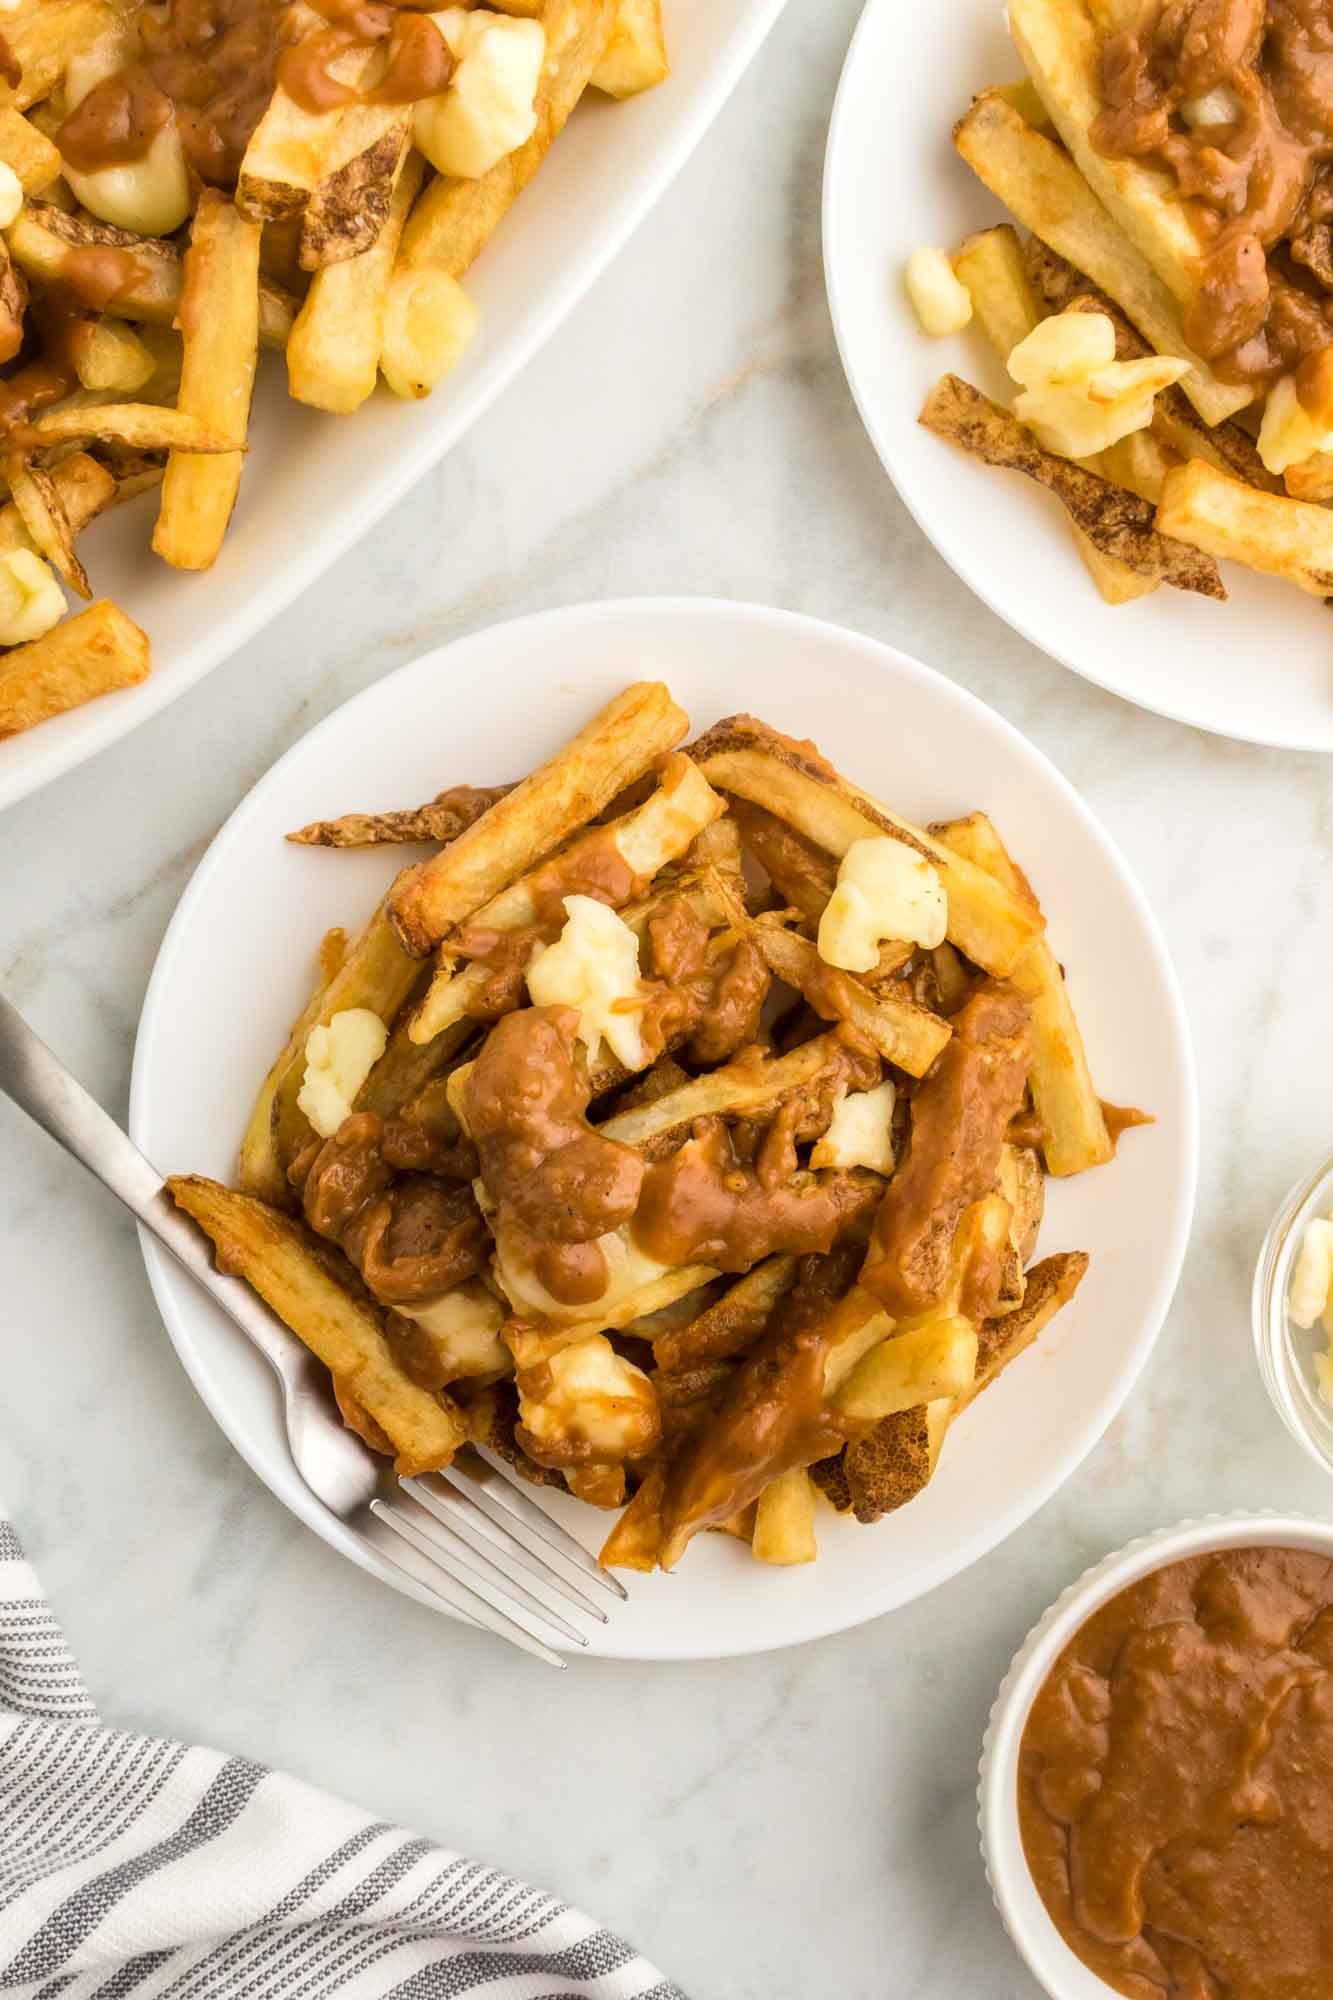 Poutine plated in single servings